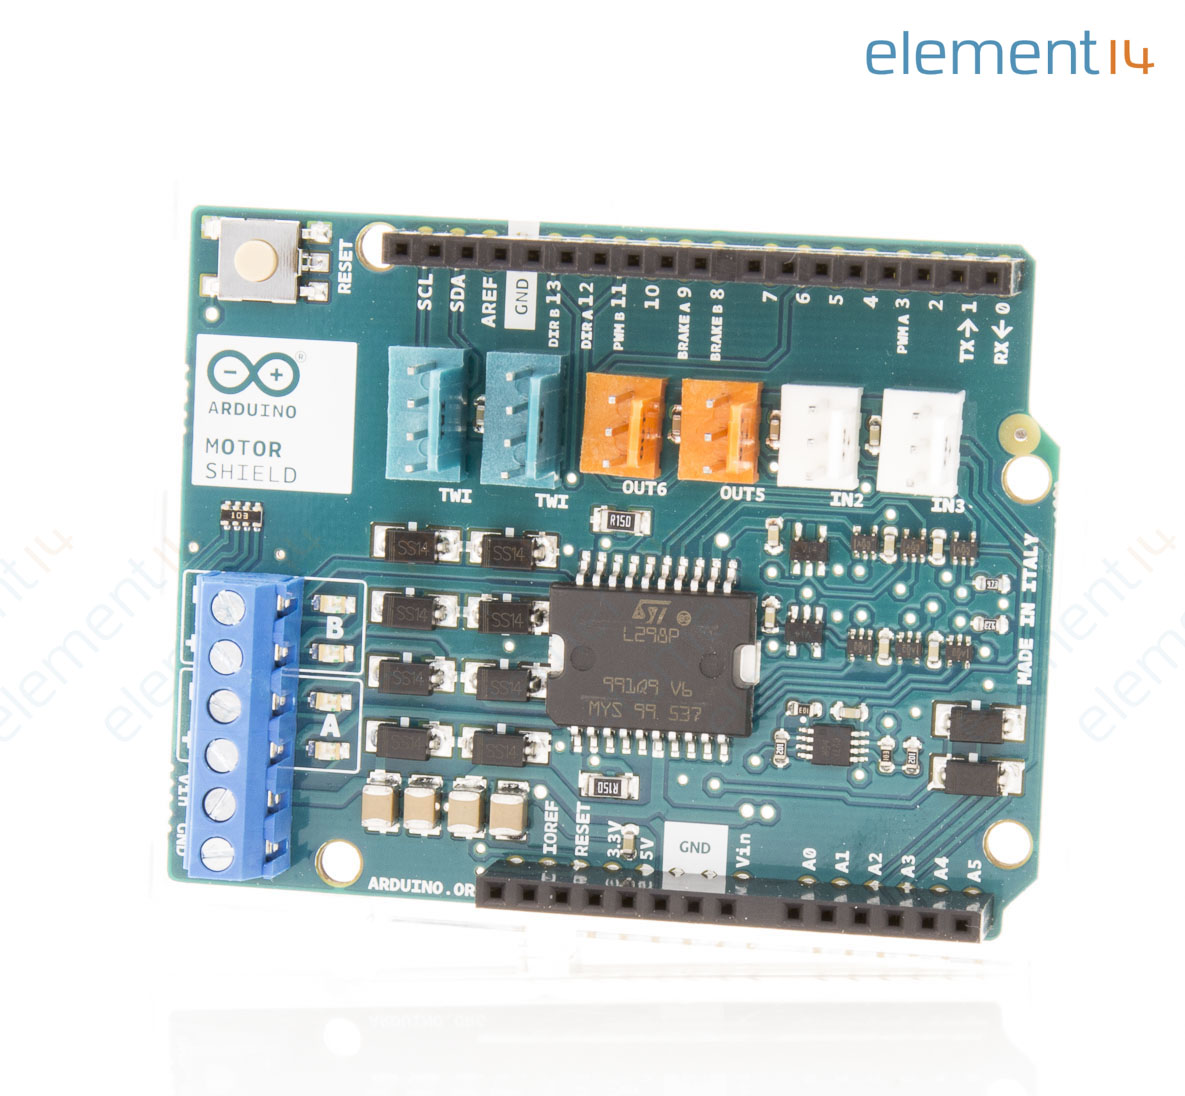 A000079 Arduino Development Board Motor Shield L298 Dual H Bridge Circuit Diagram Add To Compare